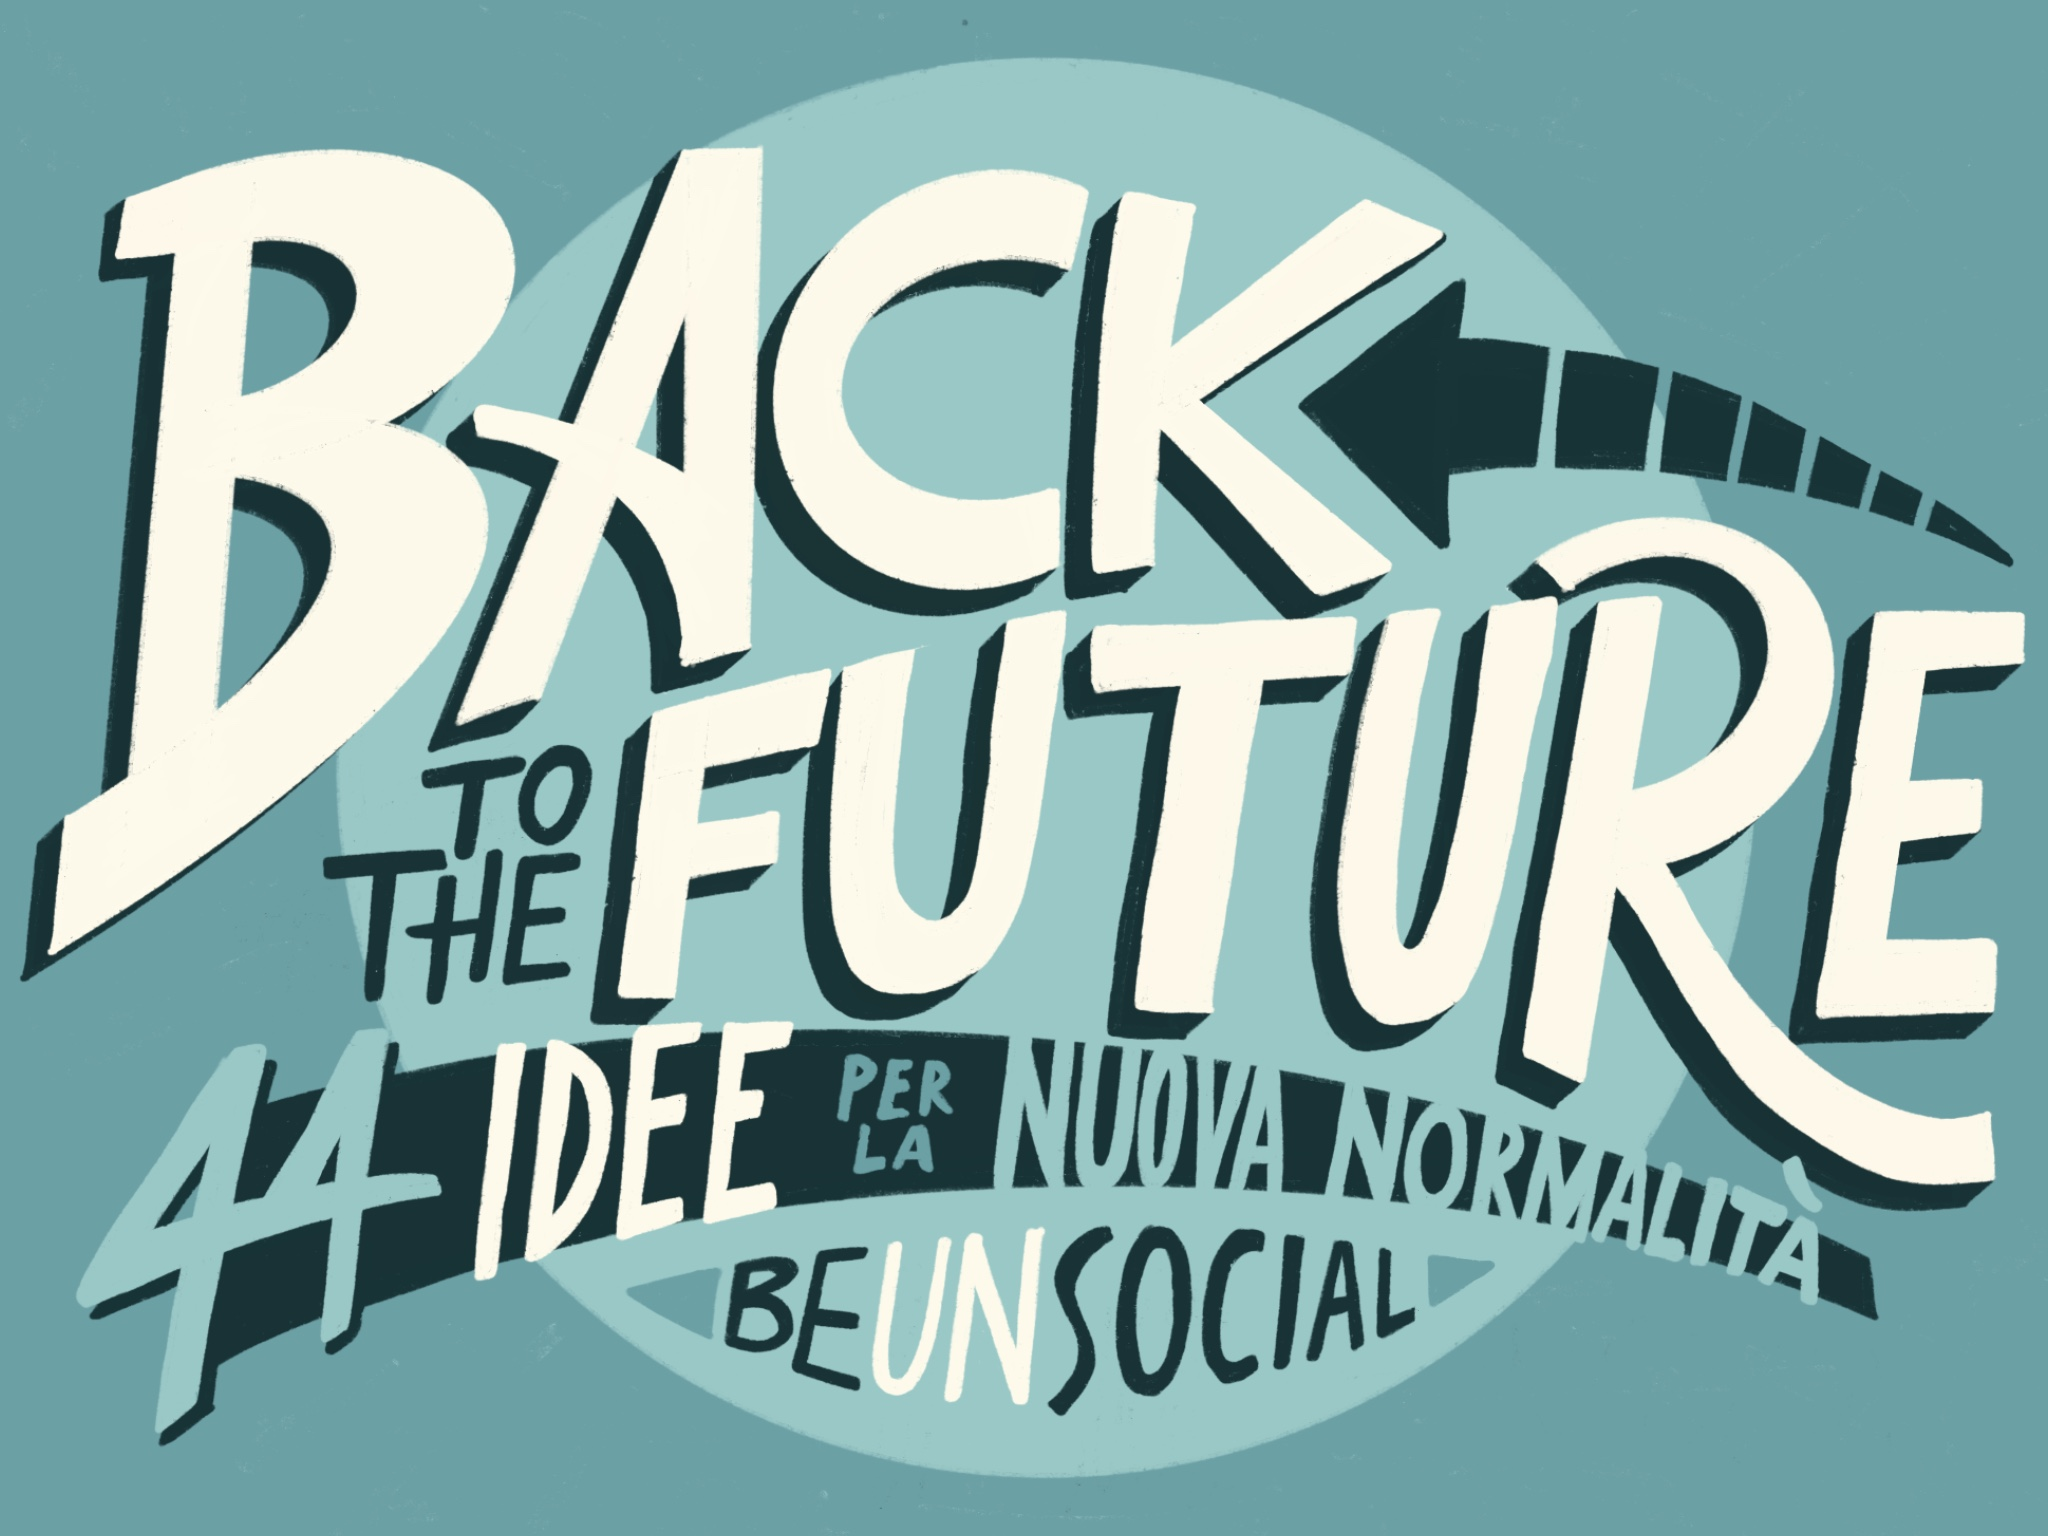 Back to the Future Be Unsocial